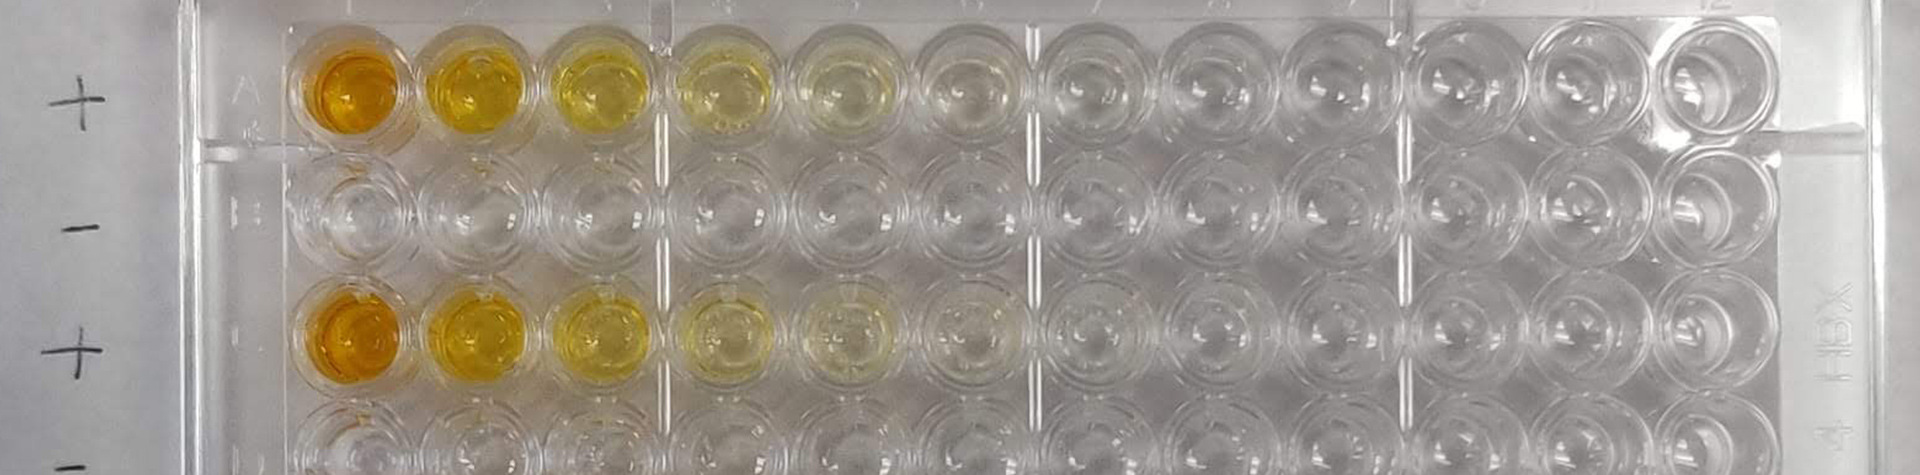 Image of lab flasks